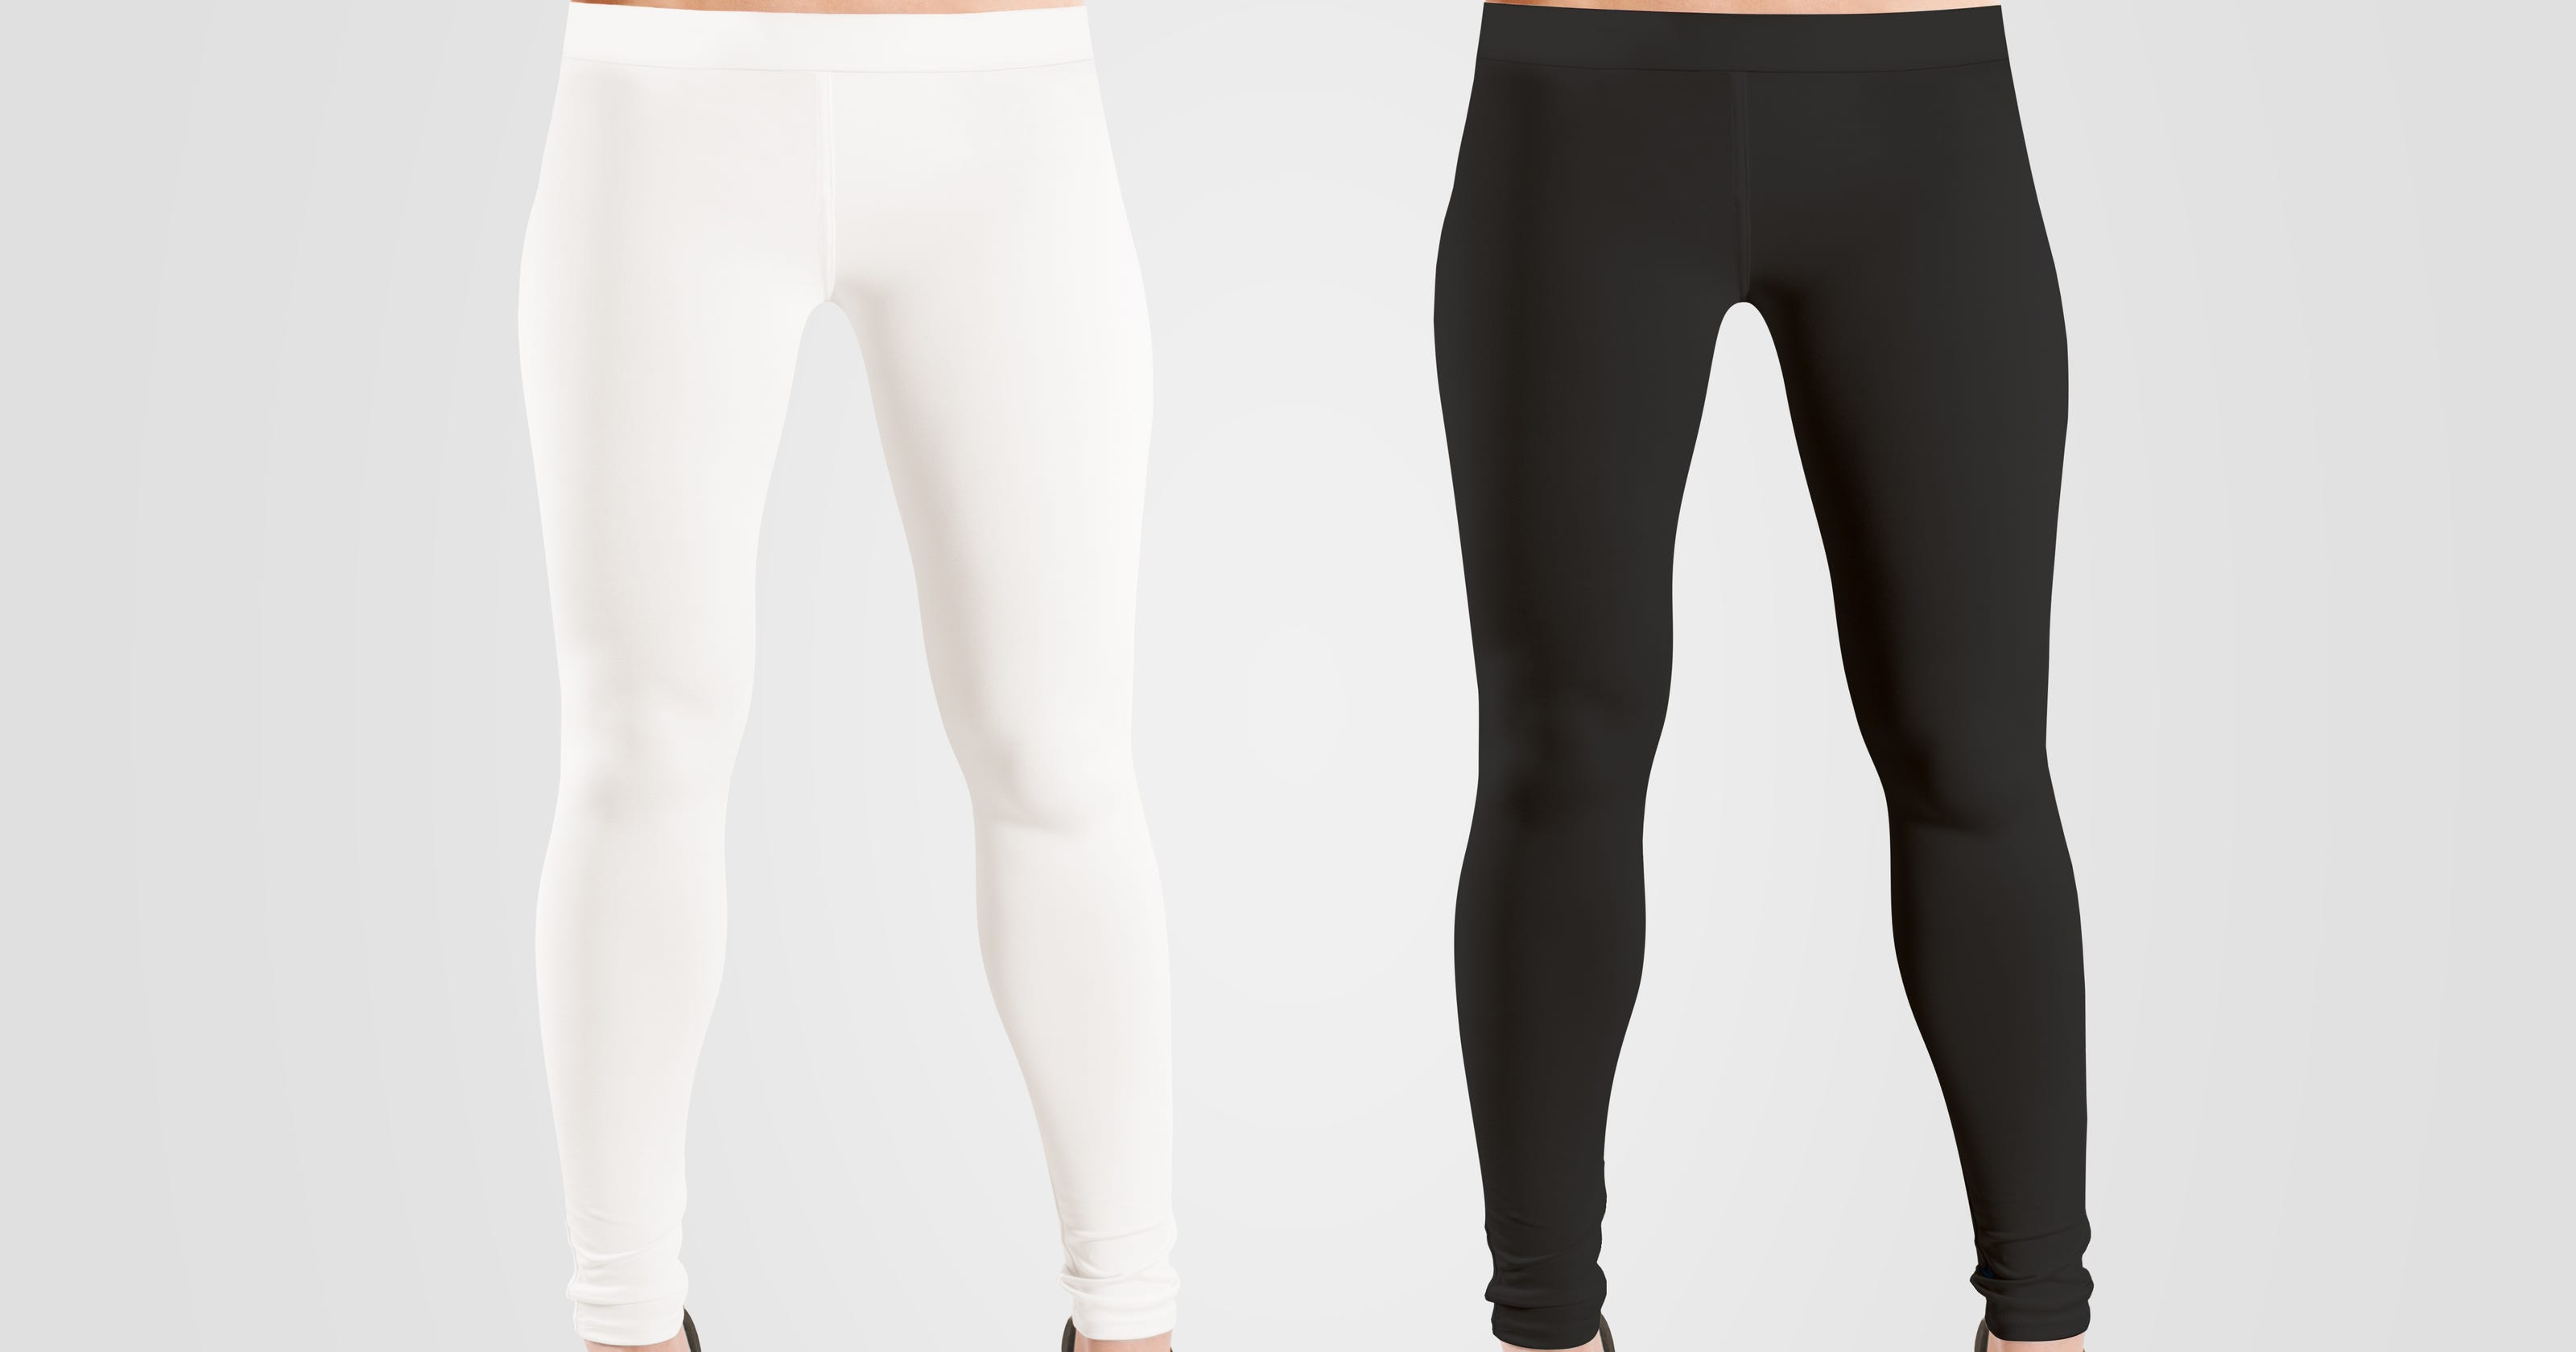 9d0dbbe546 Turbulent times: The leggings debate makes us so uncomfortable